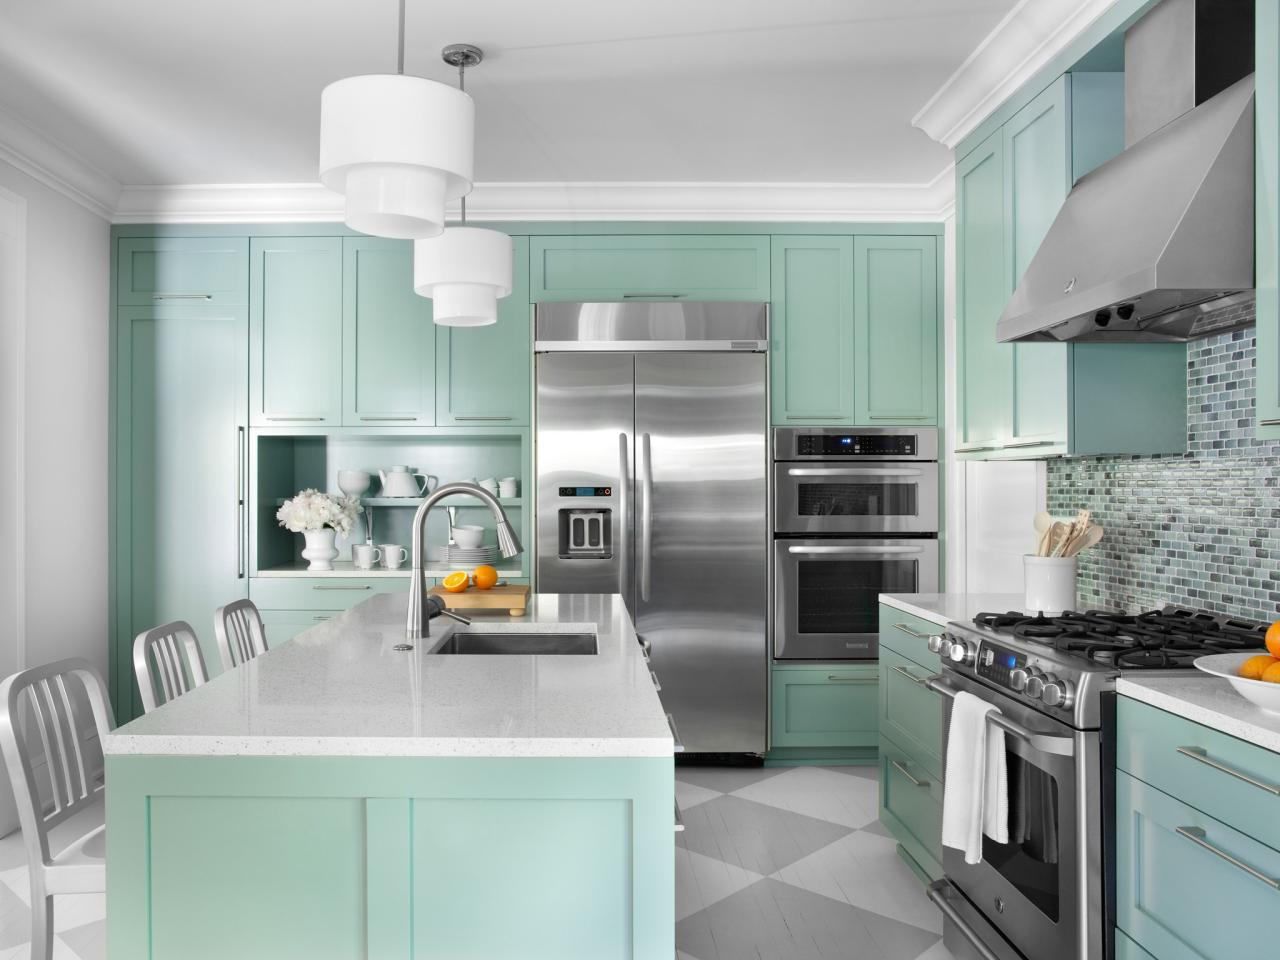 Color Ideas For Painting Kitchen Cabinets HGTV Pictures HGTV - Paint colors for kitchen cabinets and walls